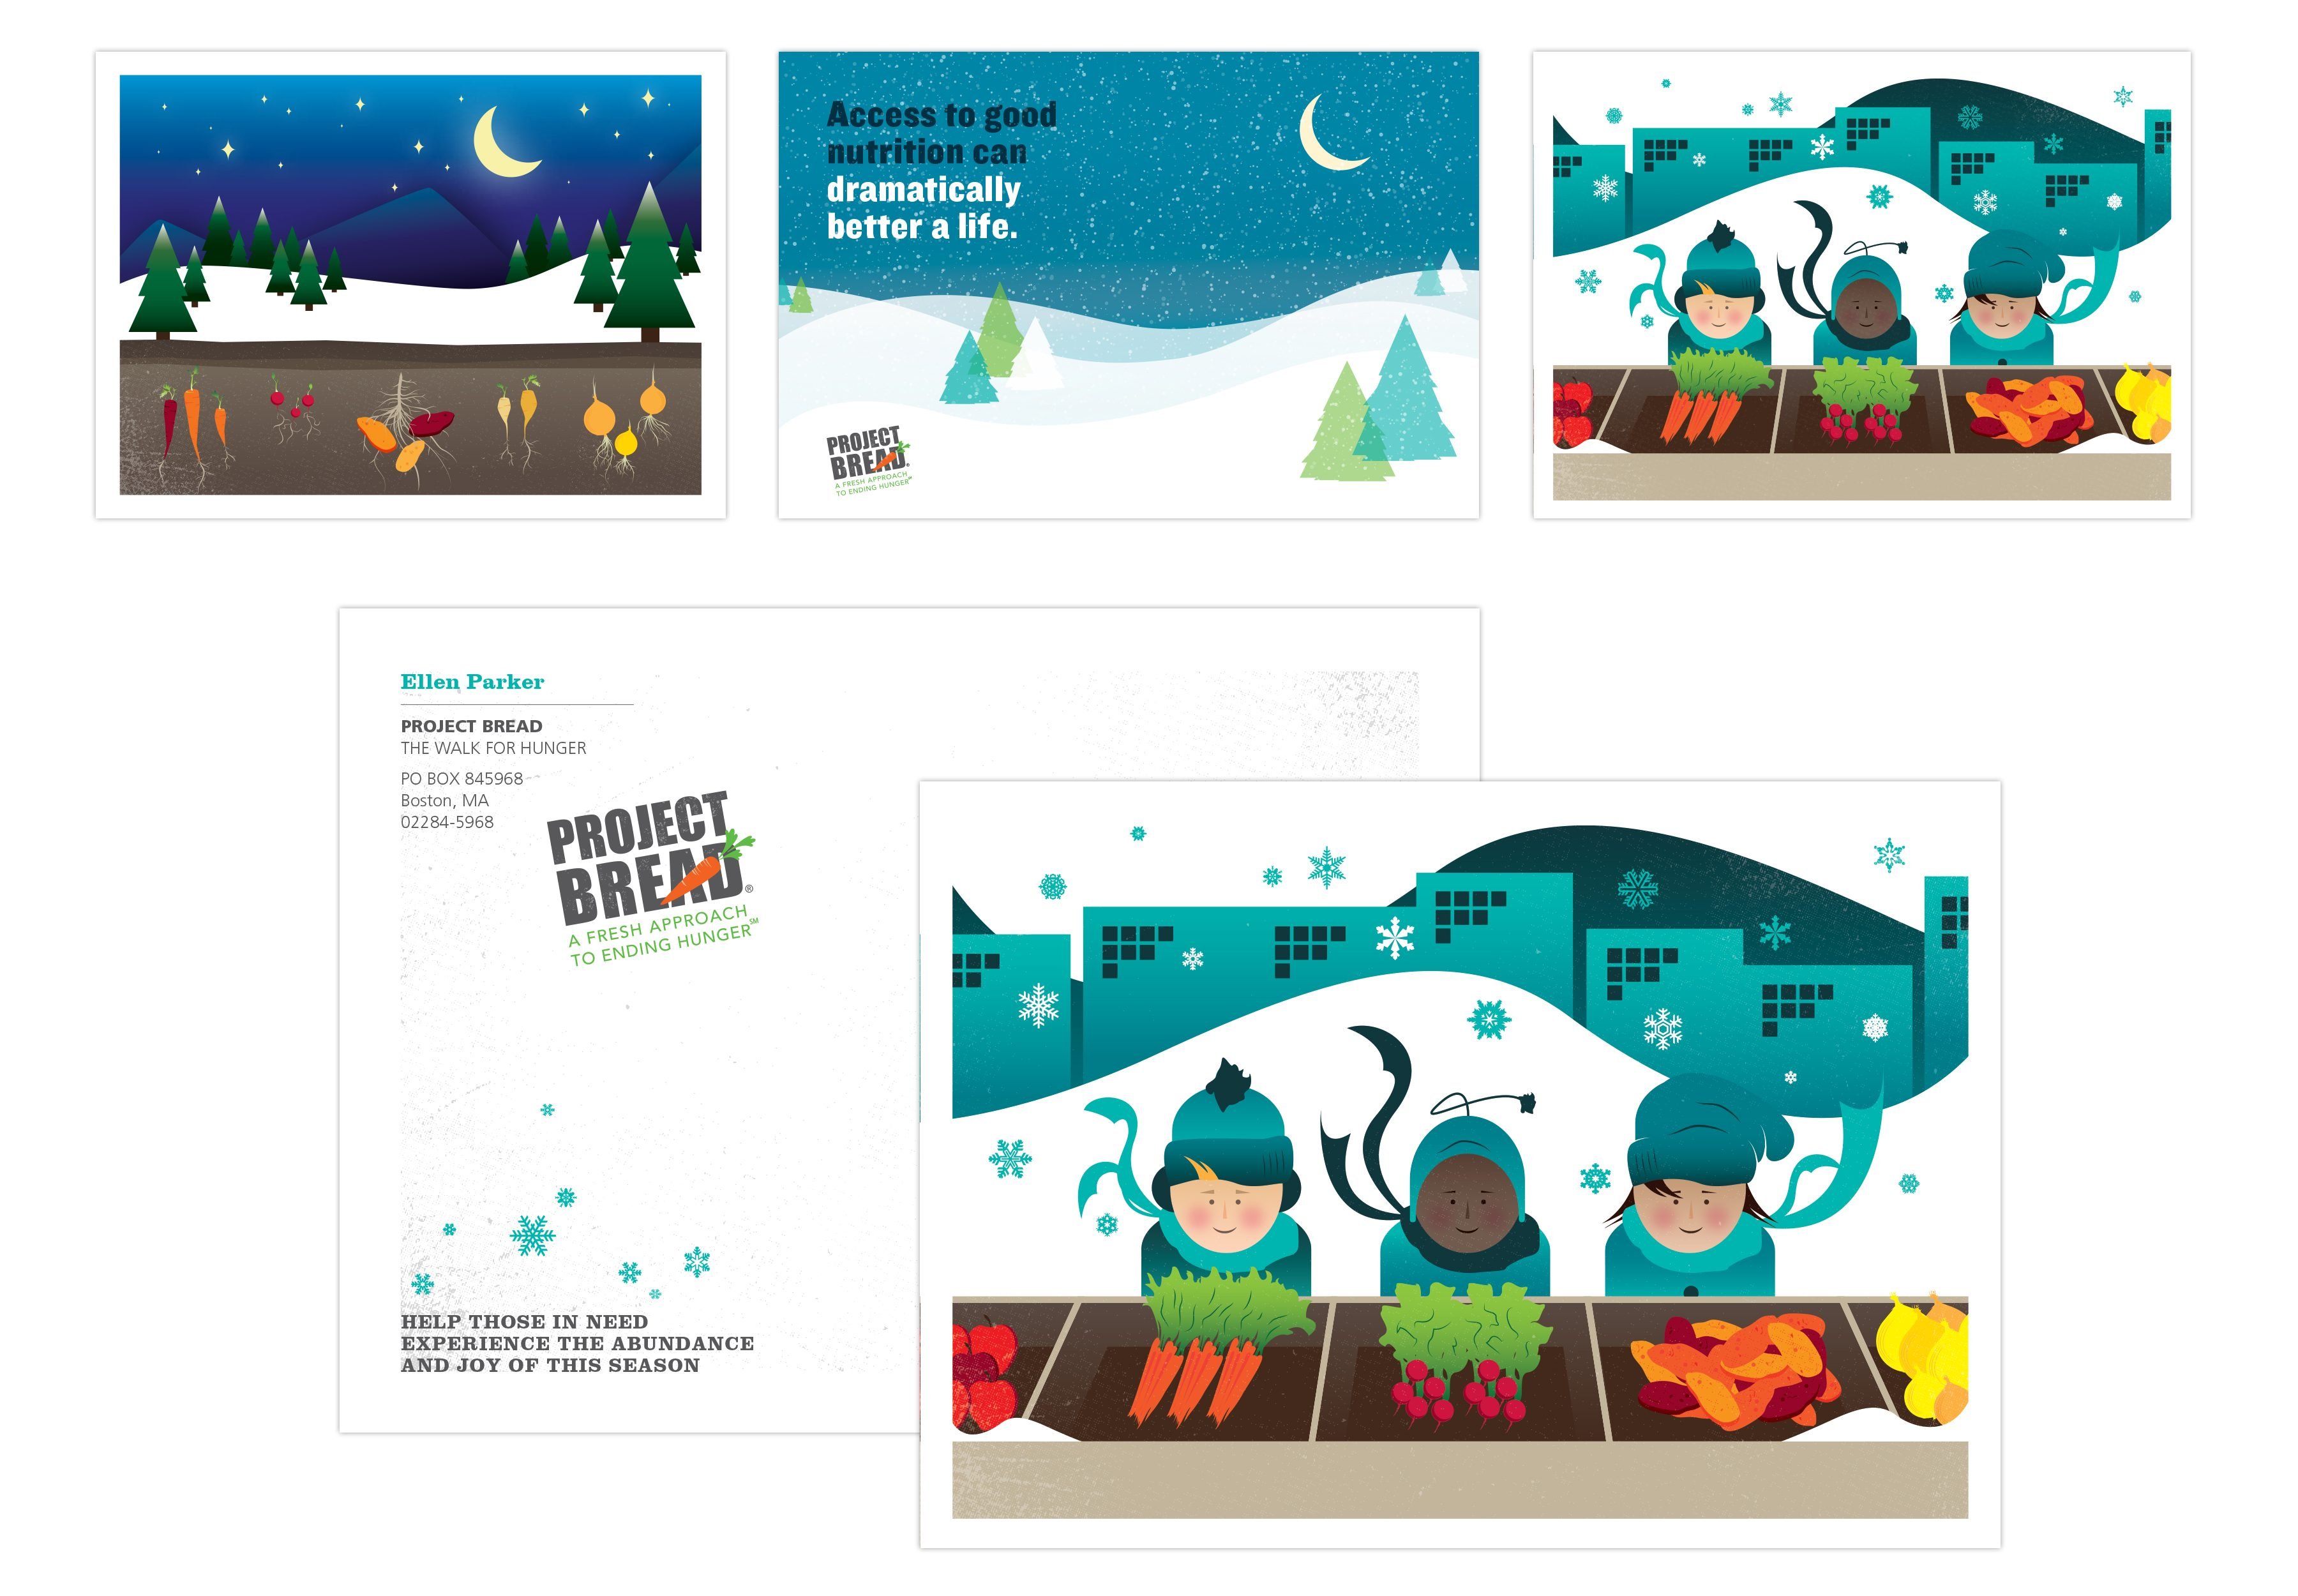 Project Bread holiday cards: Graphics of snowy fields with trees, kids in winter clothes, vegetables